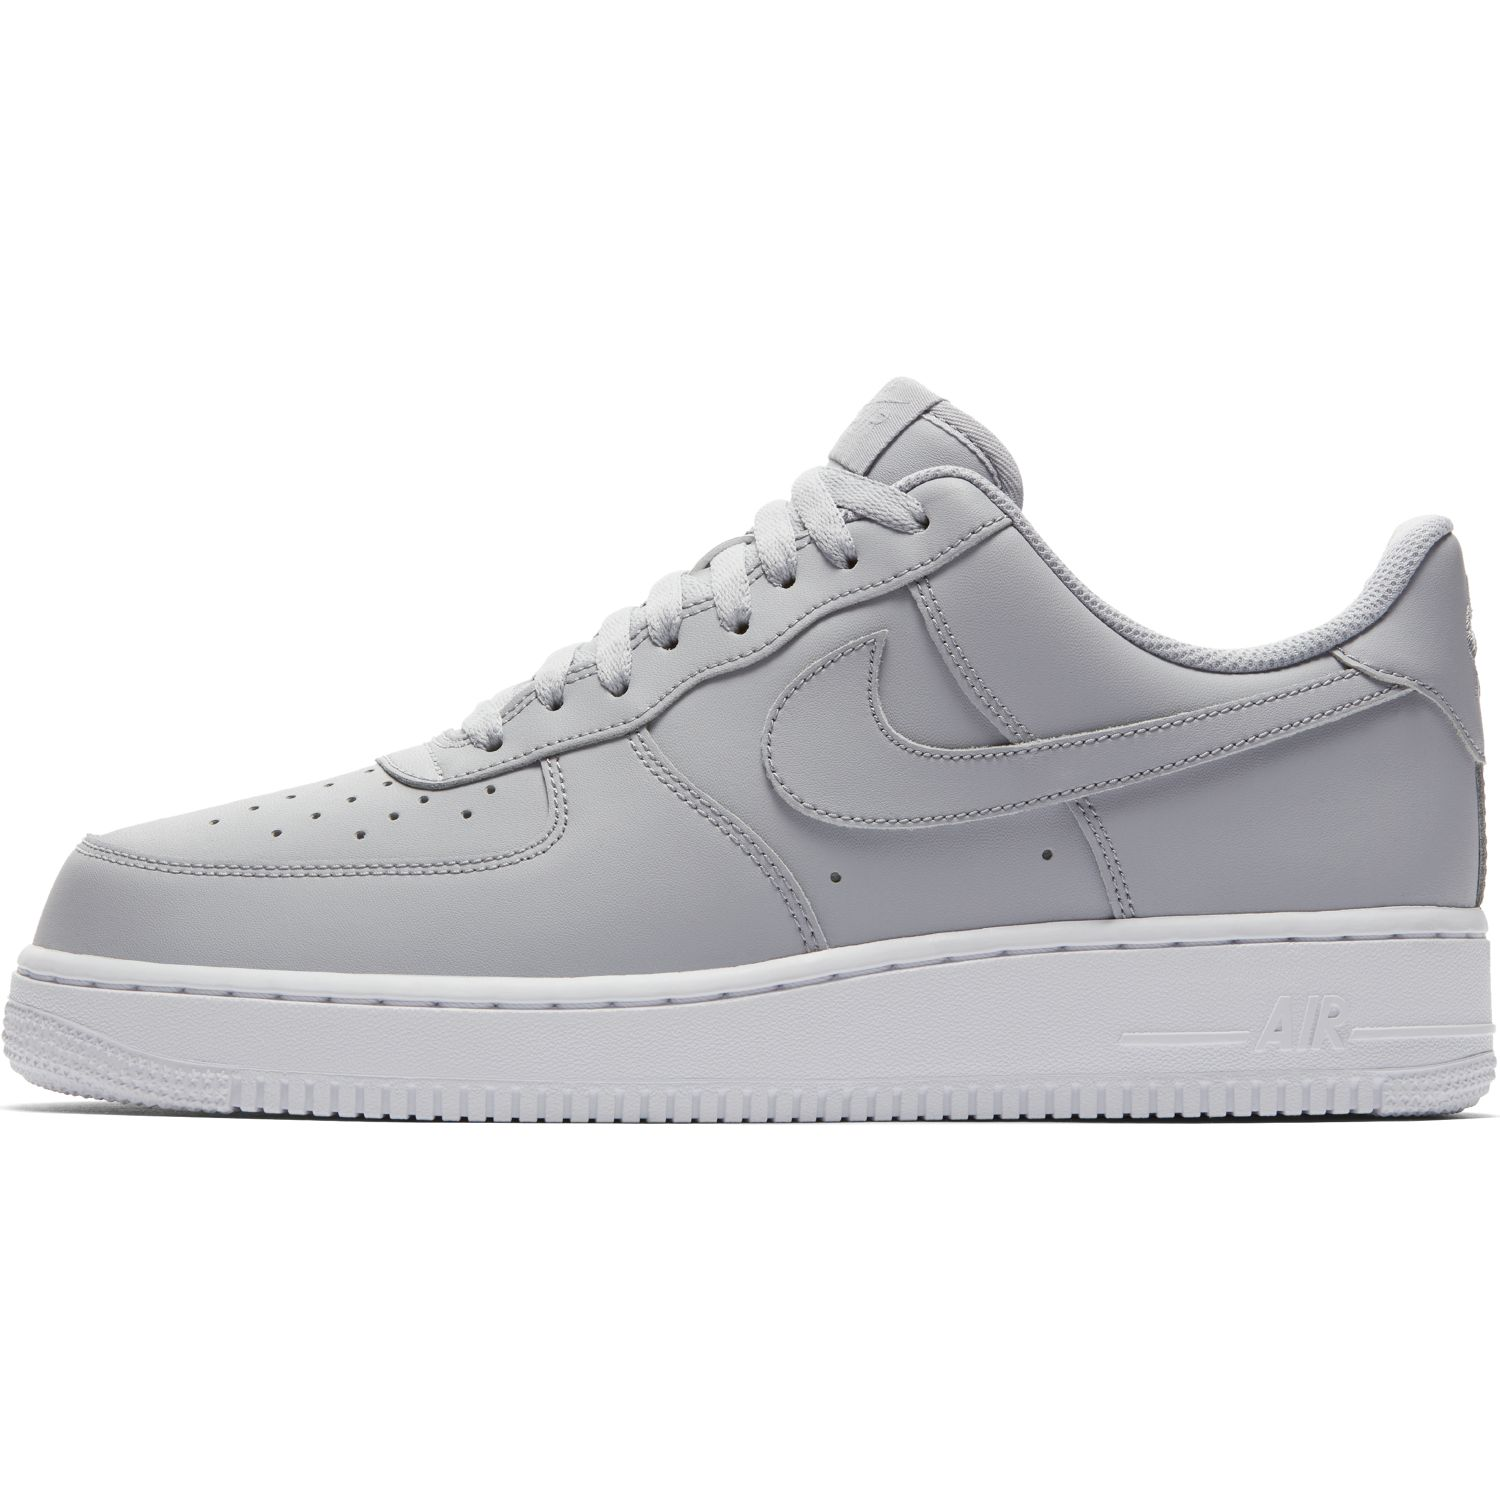 new concept 818f9 b02a5 ... BUTY MĘSKIE NIKE AIR FORCE 1 07 SZARE AA4083-010 ...